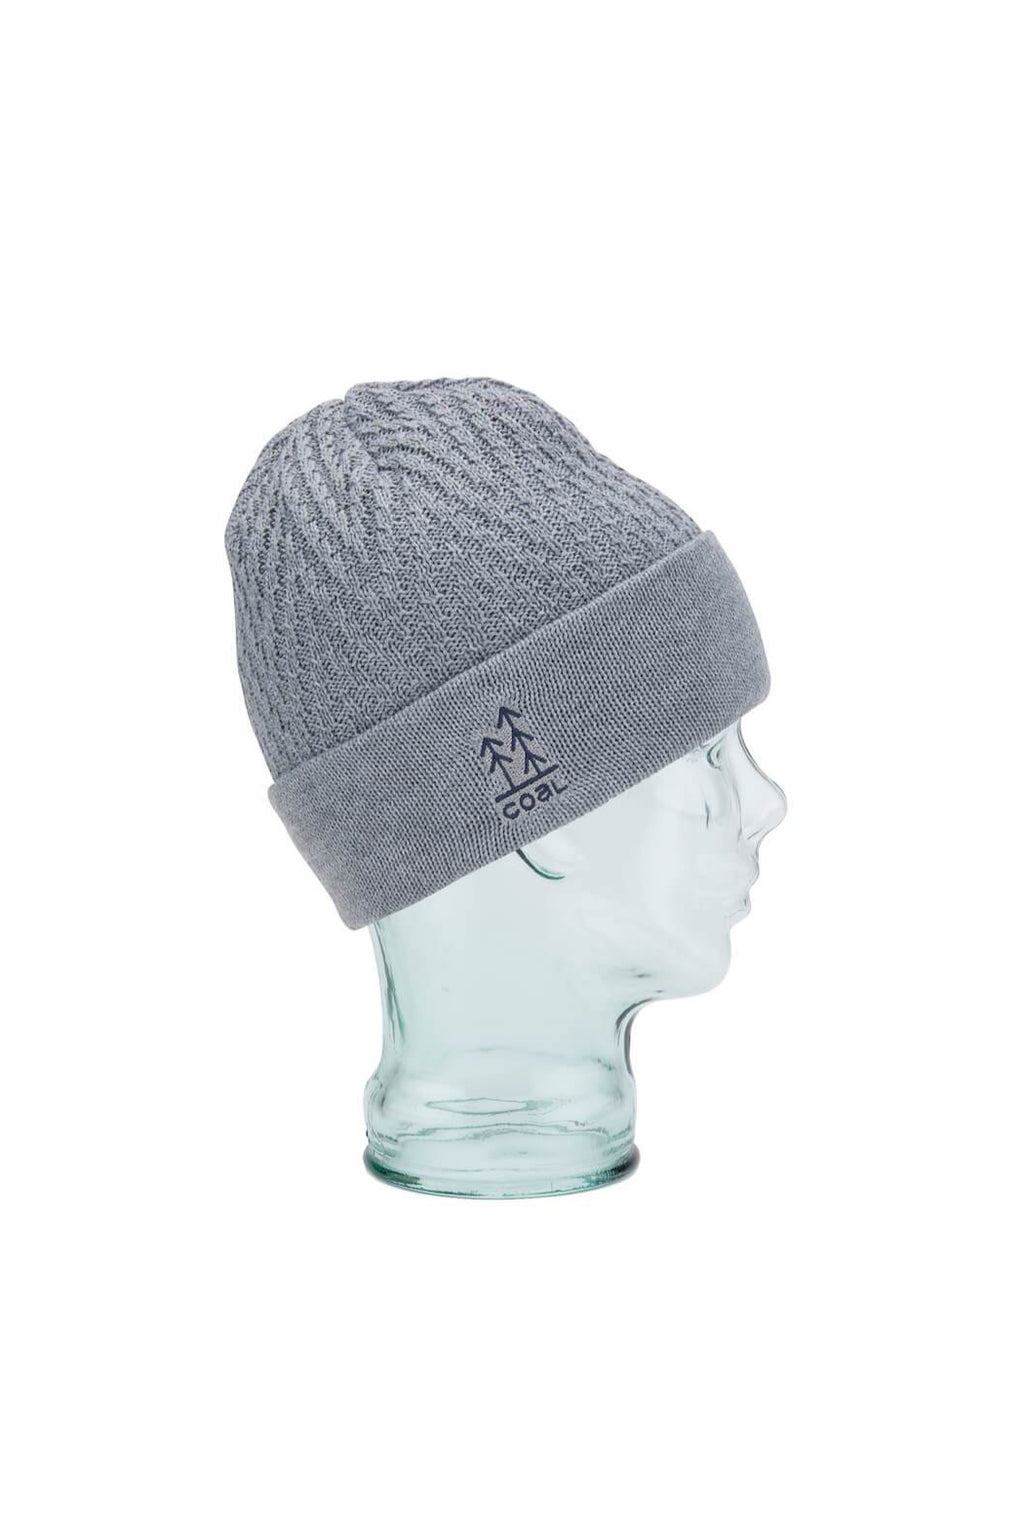 Coal Winslow Beanie in Heather Grey